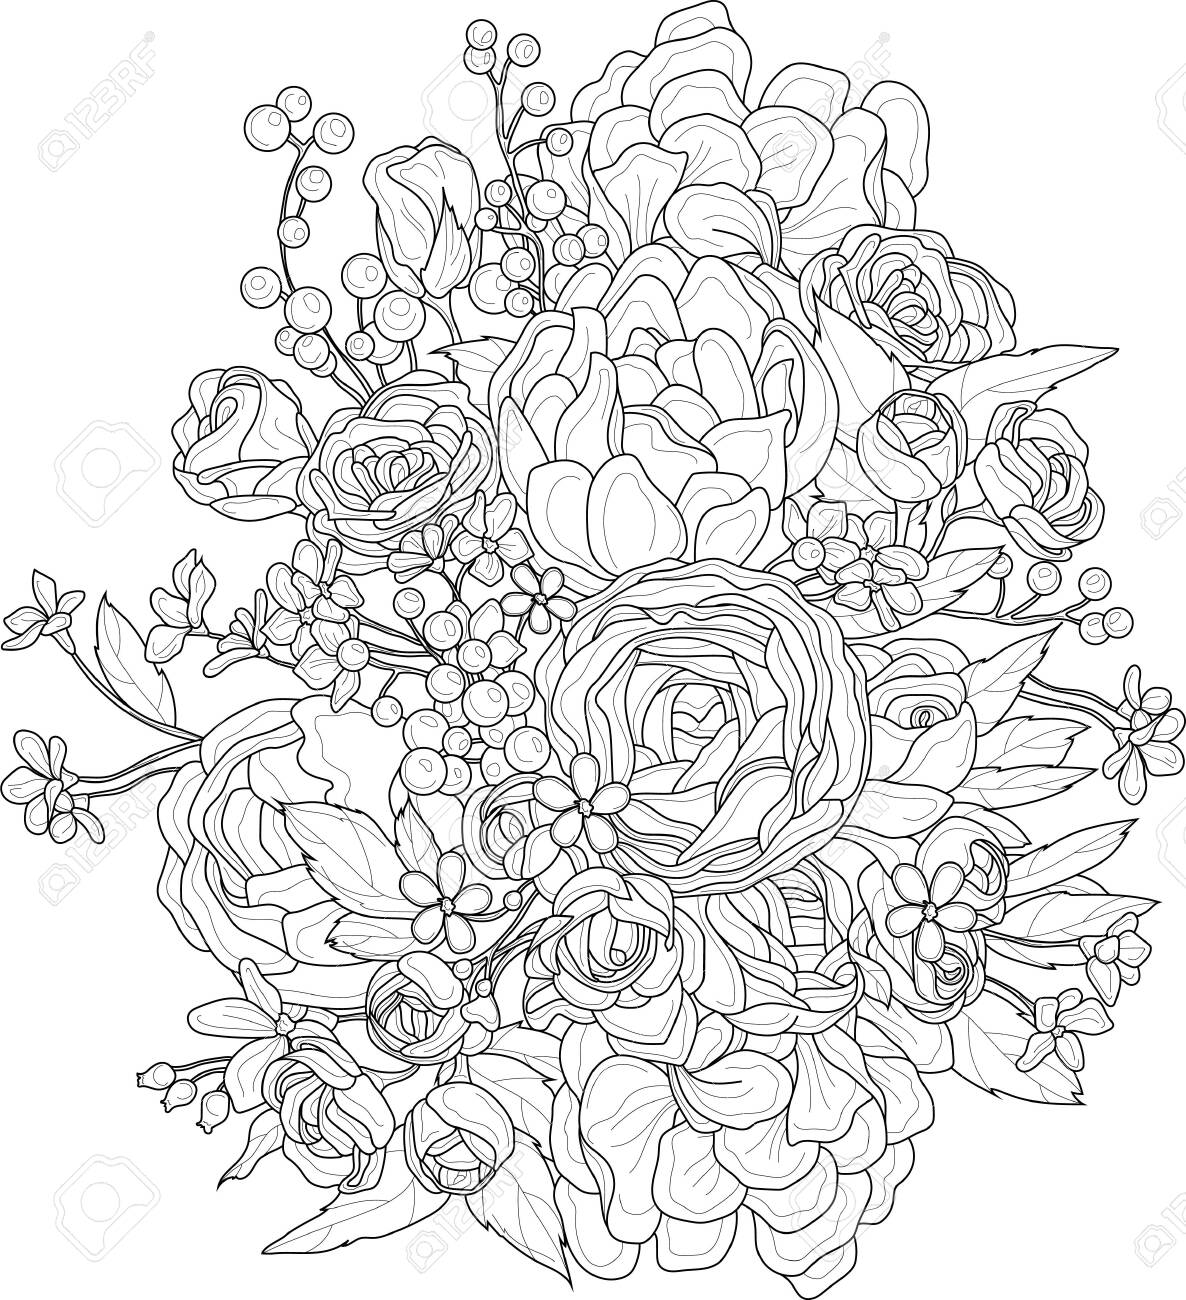 Realistic mix flowers bouquet with roses, peony and small berries and flowers sketch. Vector illustration in black and white for games, background, pattern, decor. Print for fabrics. Coloring paper - 154738077